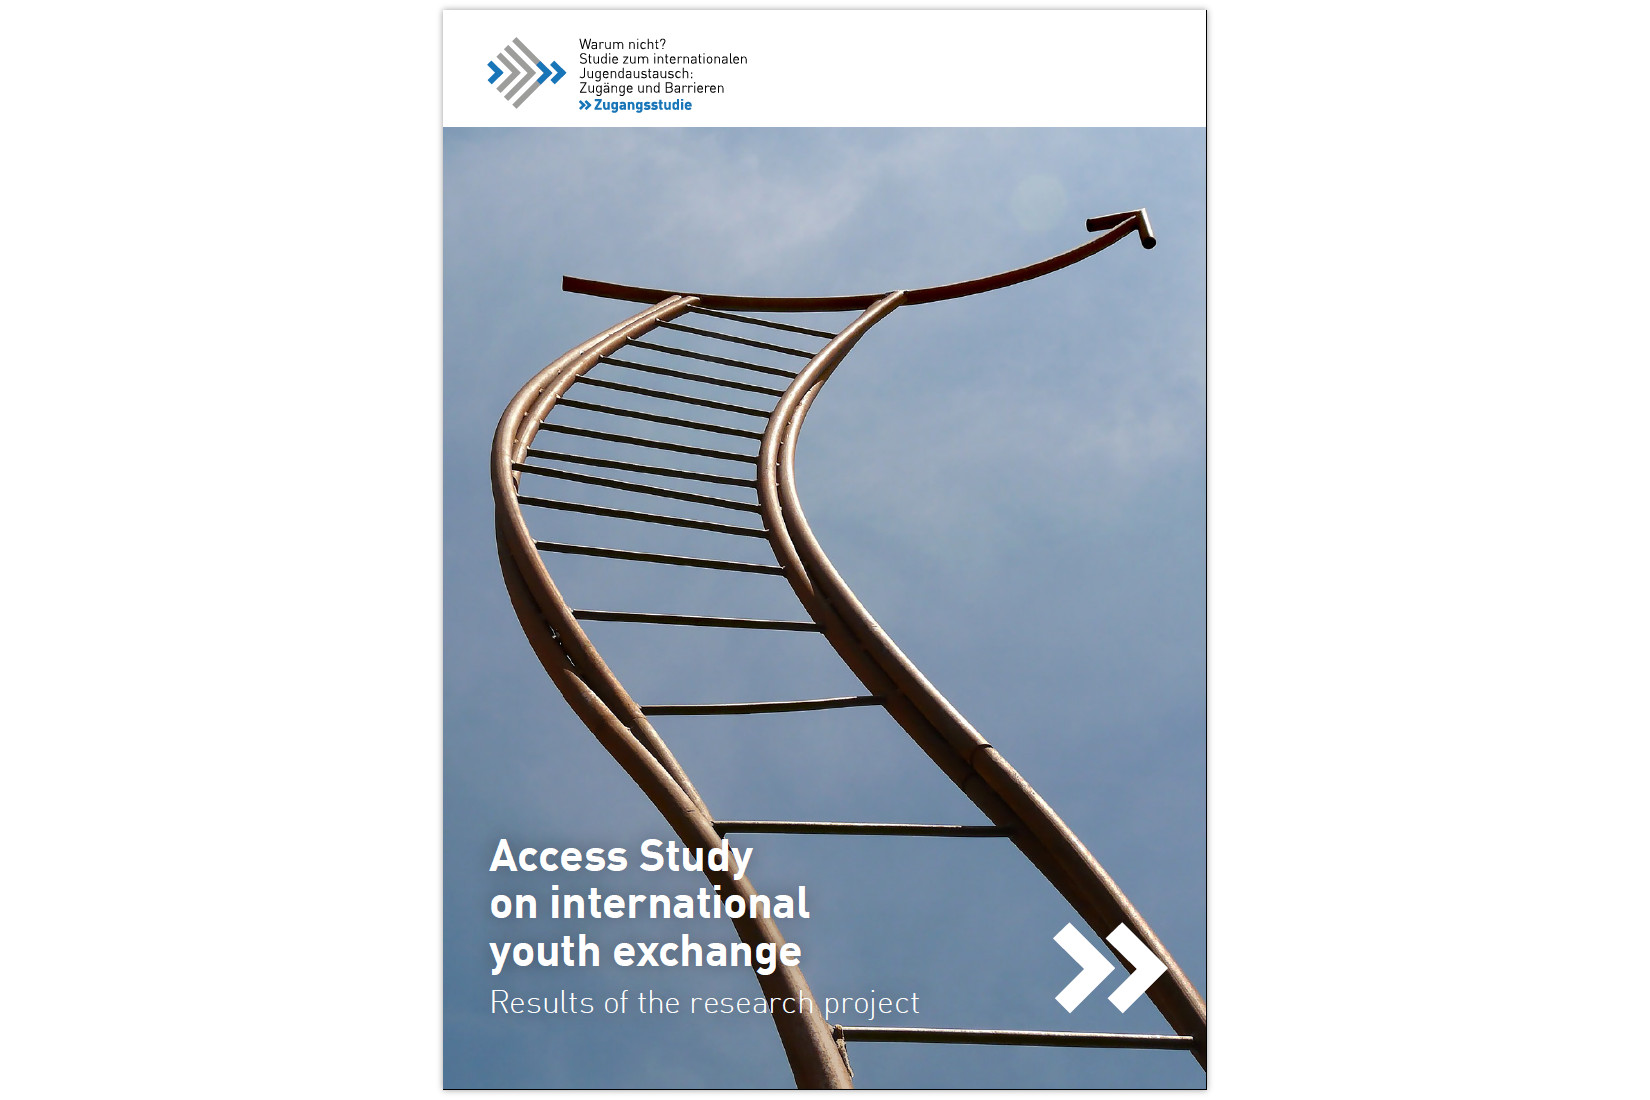 Booklet Access Study on international youth exchange - results of the research project